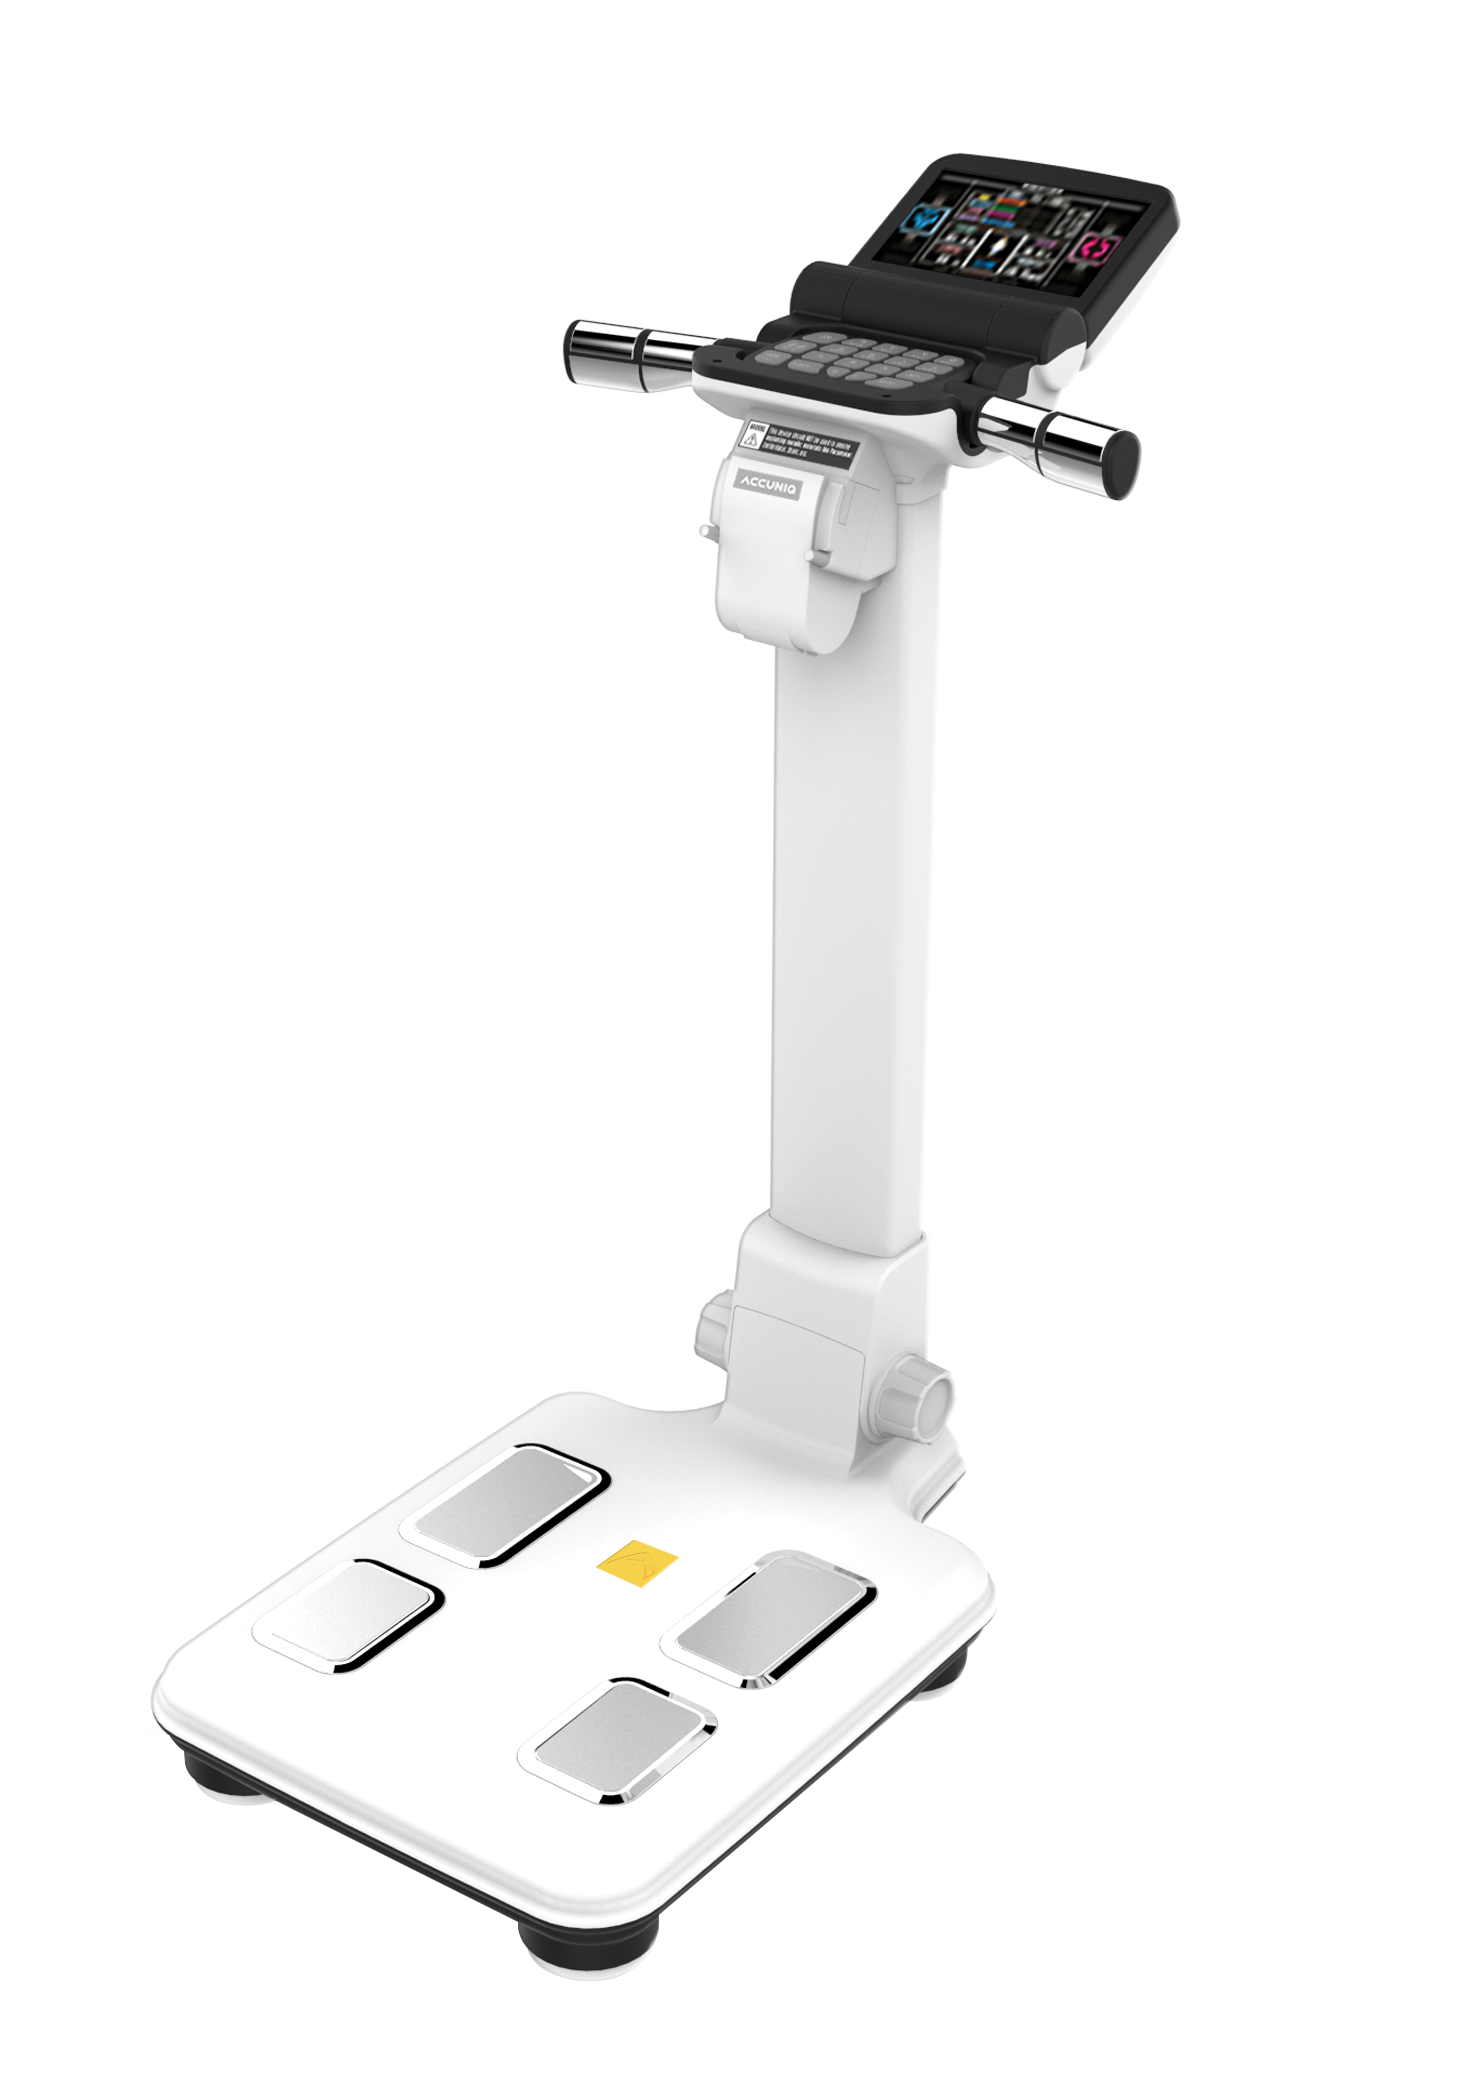 BC300 Body Composition Analyzer